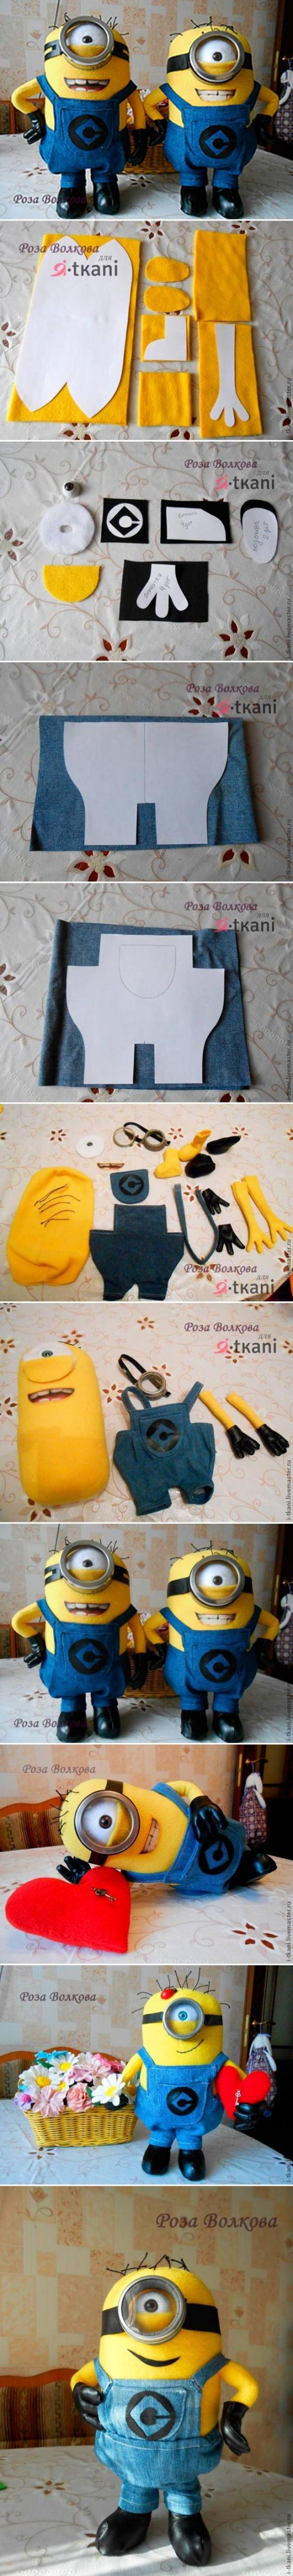 How to make Minion toy Doll step by step DIY tutorial instructions